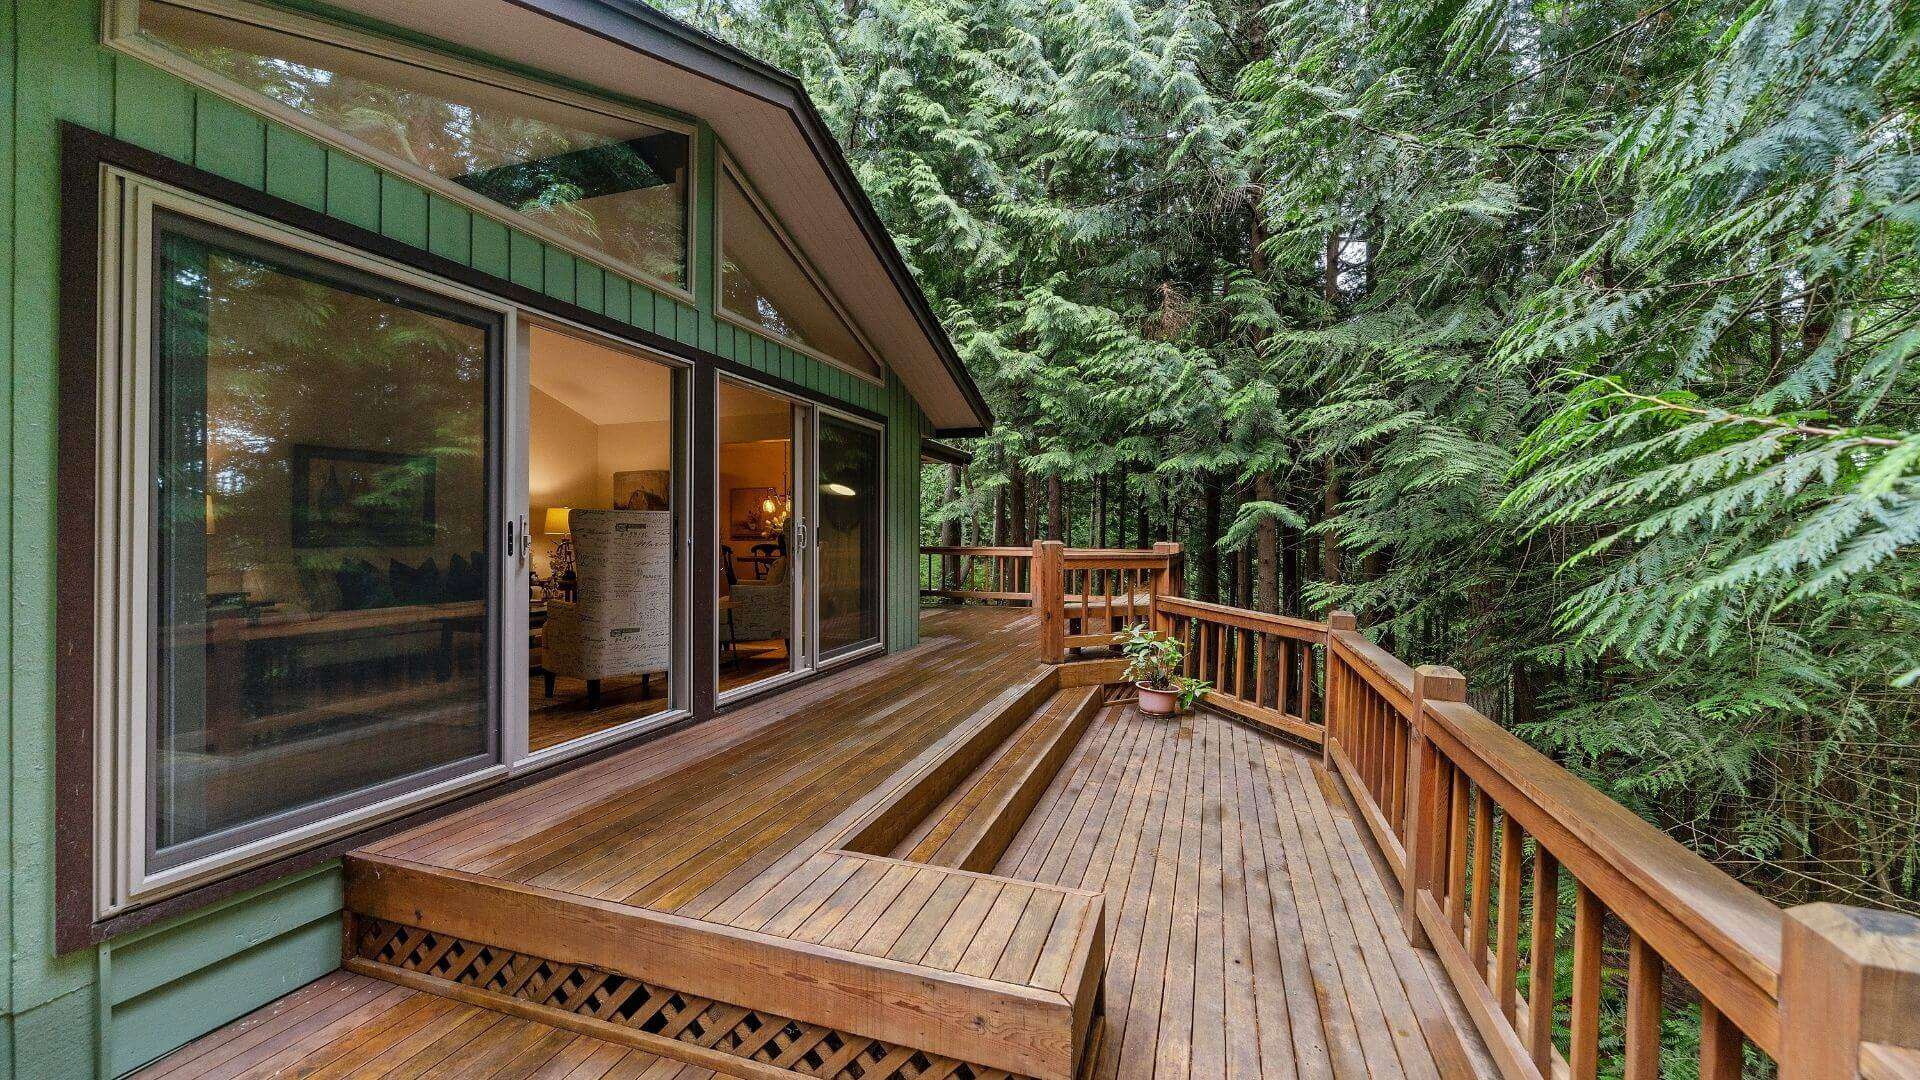 Considerations to Think About Before Building a Wood Deck